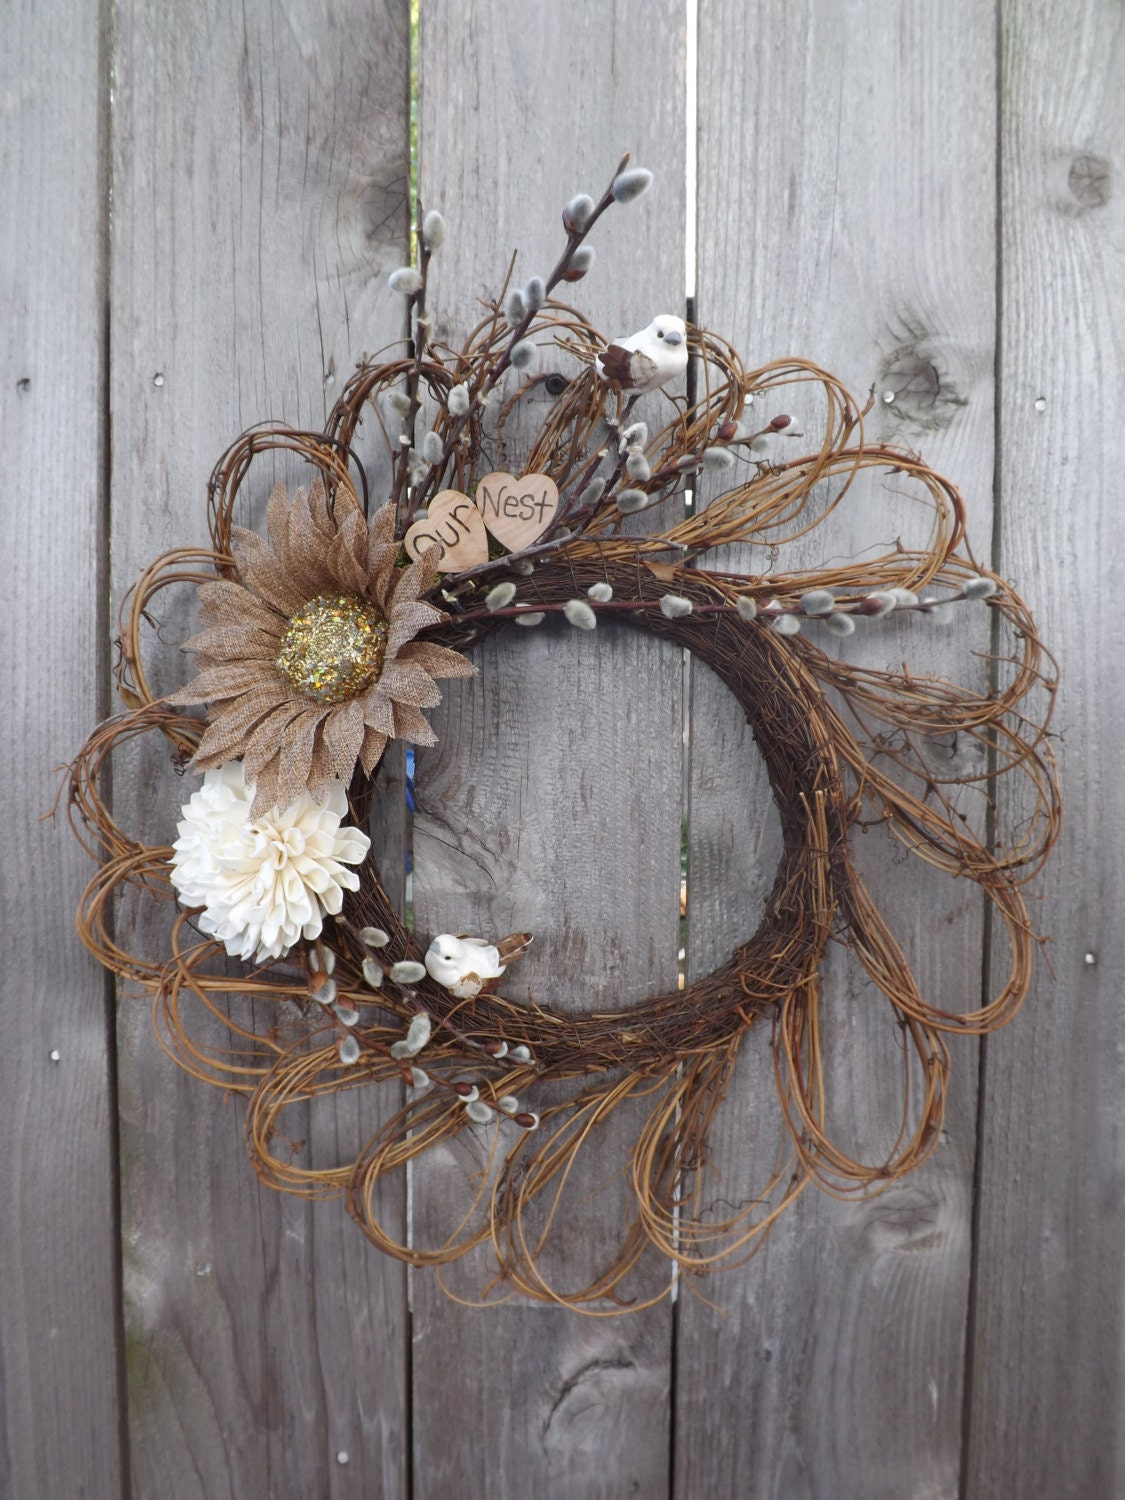 Unavailable listing on etsy How to decorate a wreath